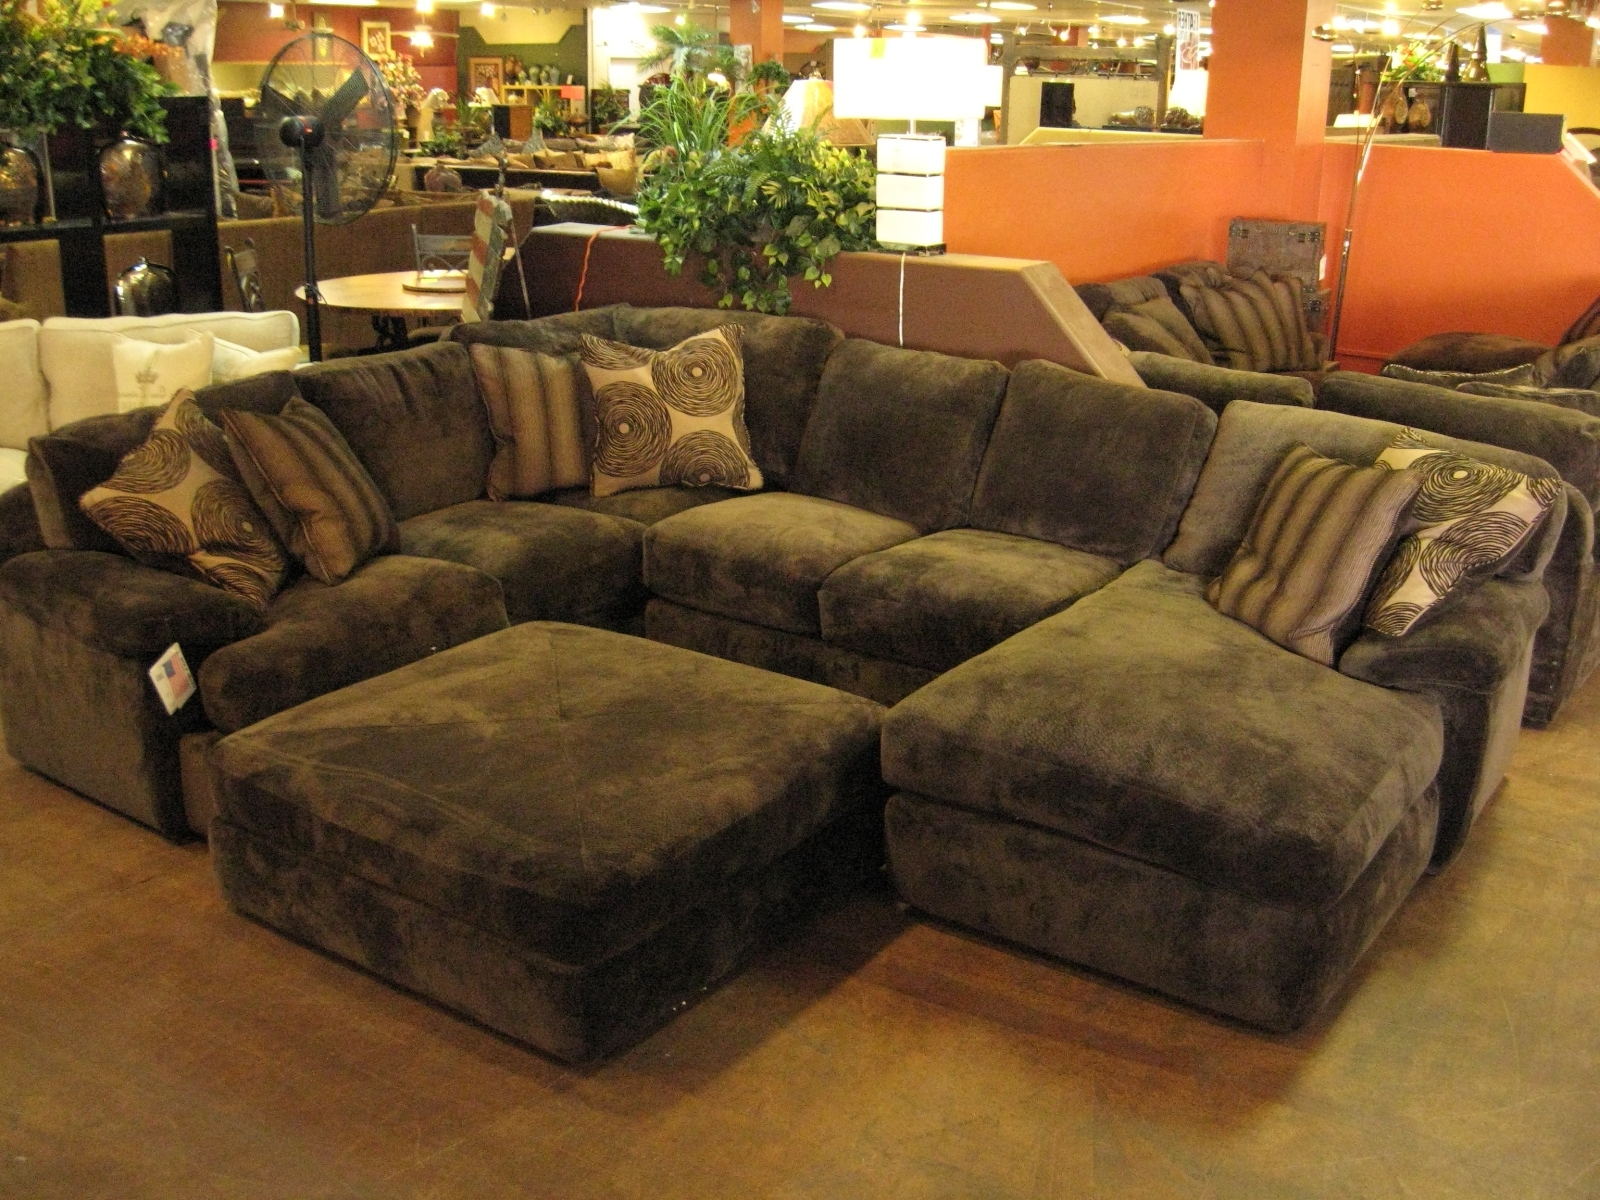 Deep U Shaped Sectionals For Most Recent Extra Deep U Shaped Sofa With Chaise And Ottoman Of Gorgeous Extra (View 3 of 15)